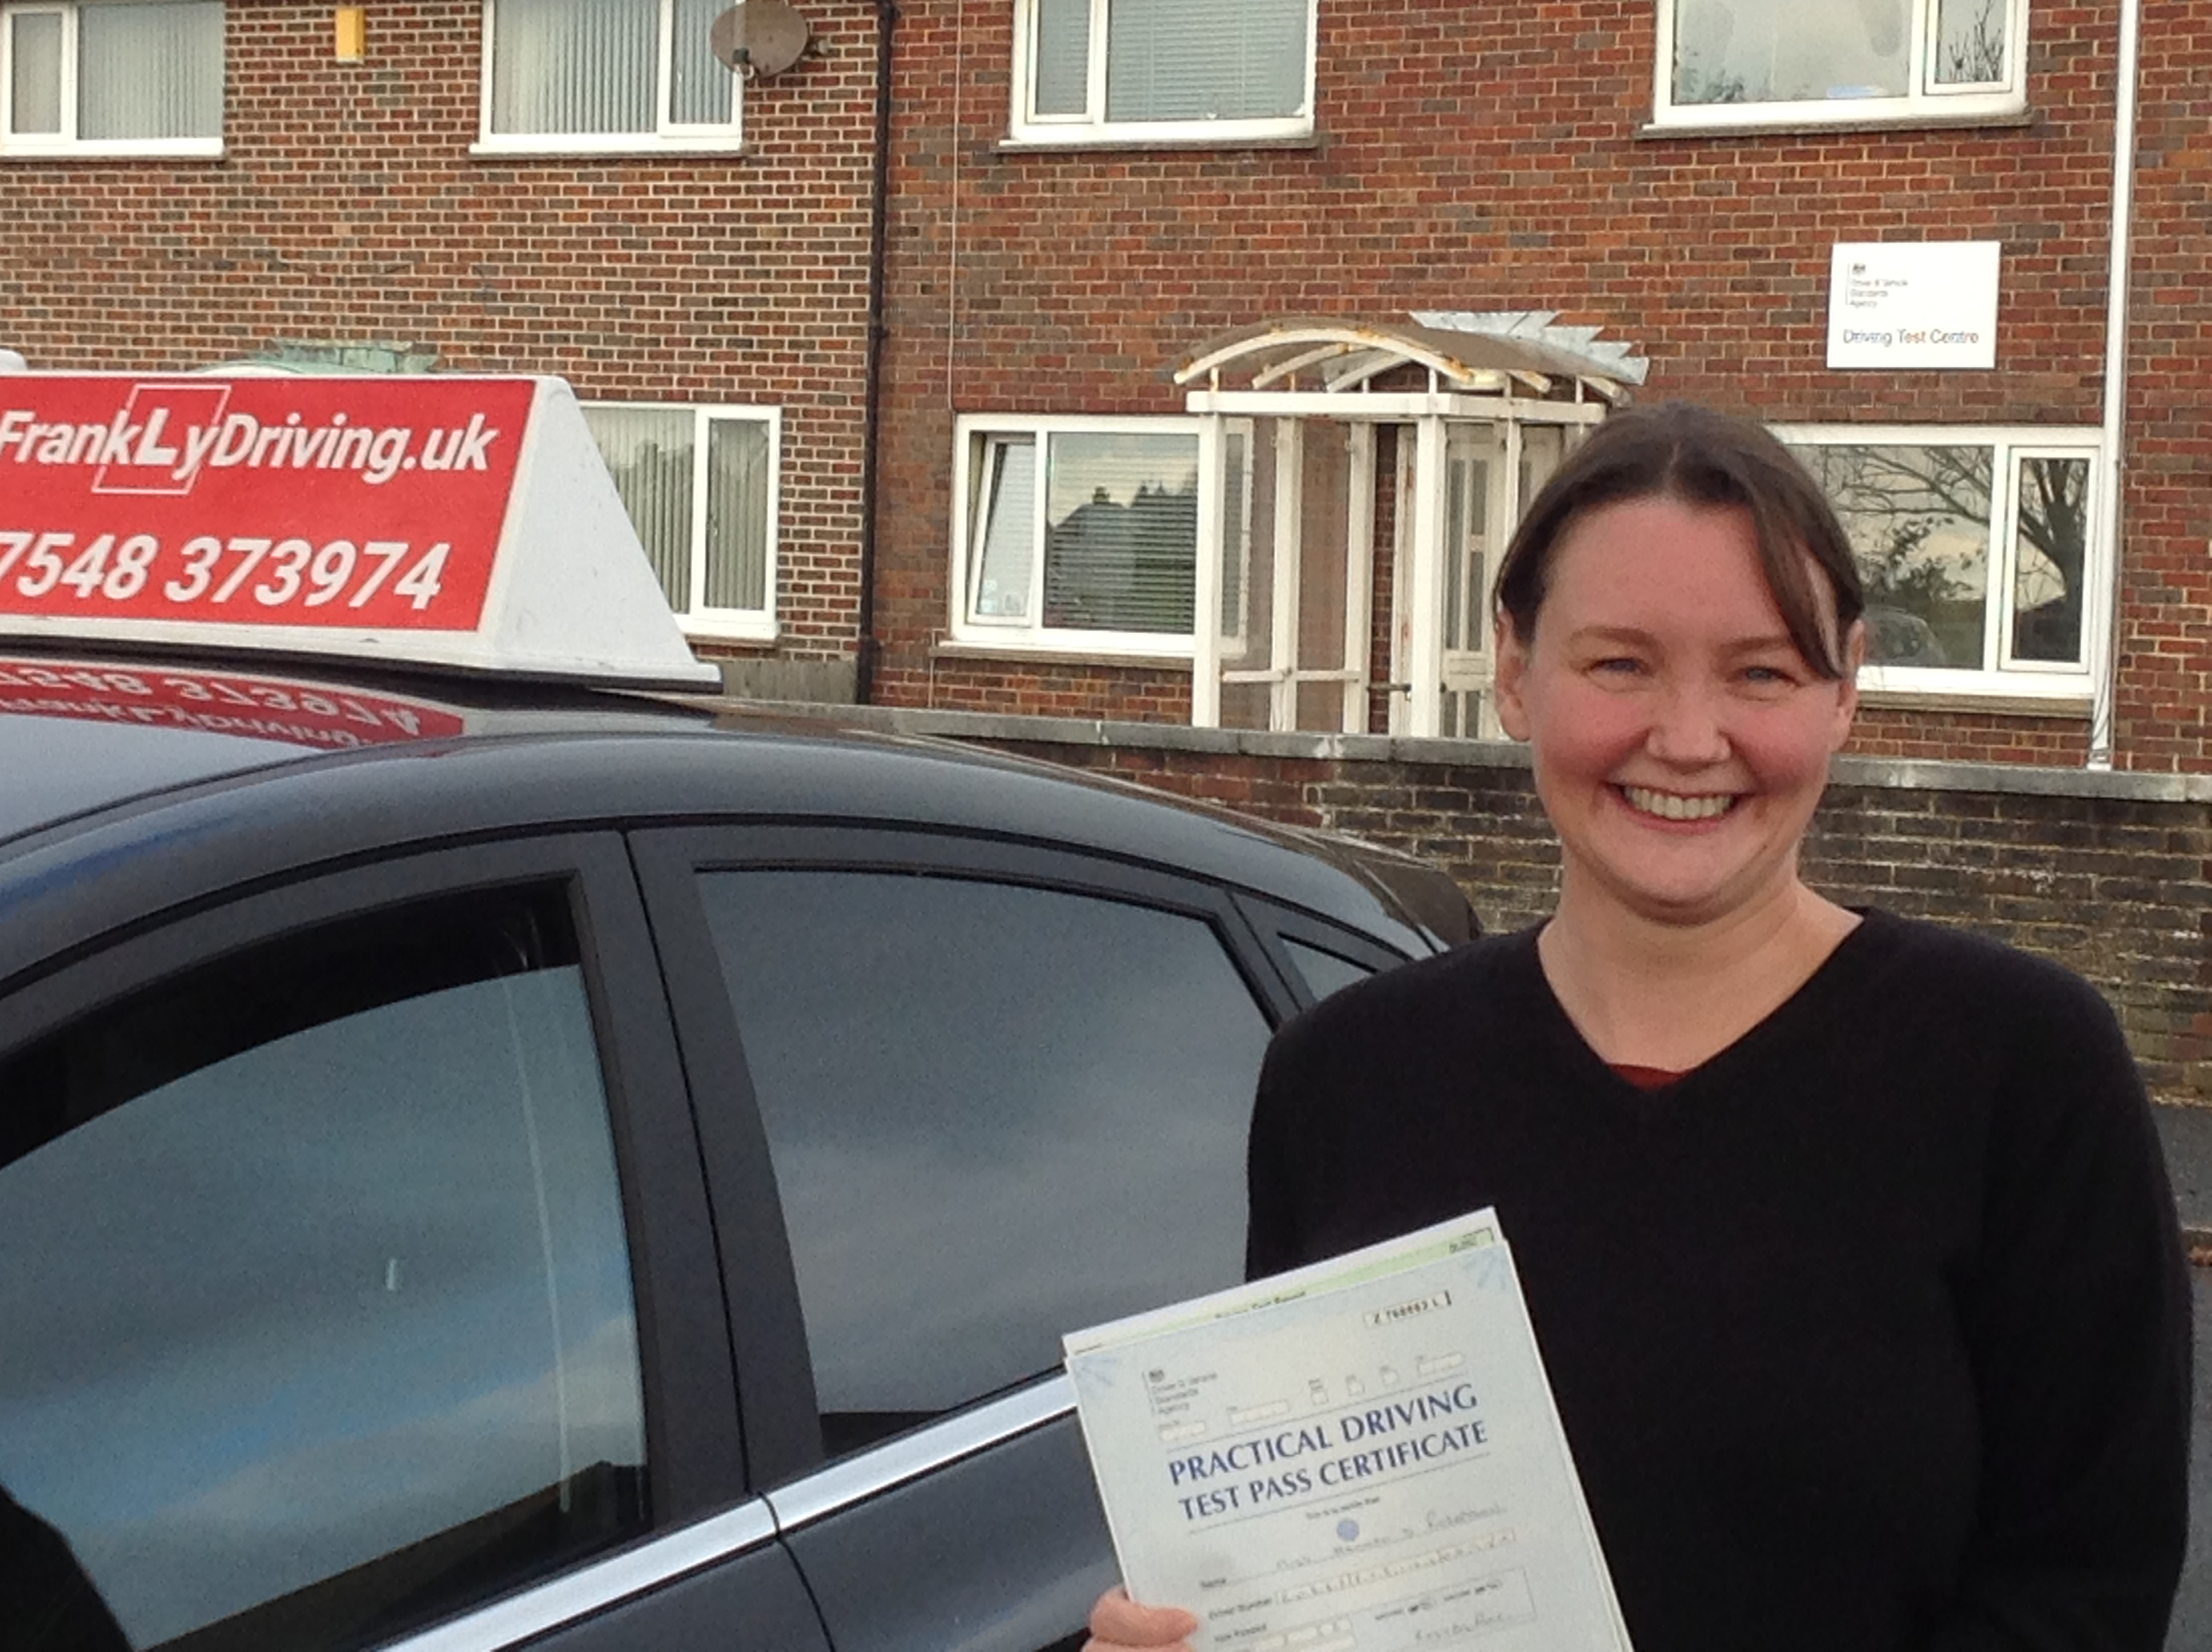 Hannah passes Practical Driving Test with FrankLyDriving on first attempt